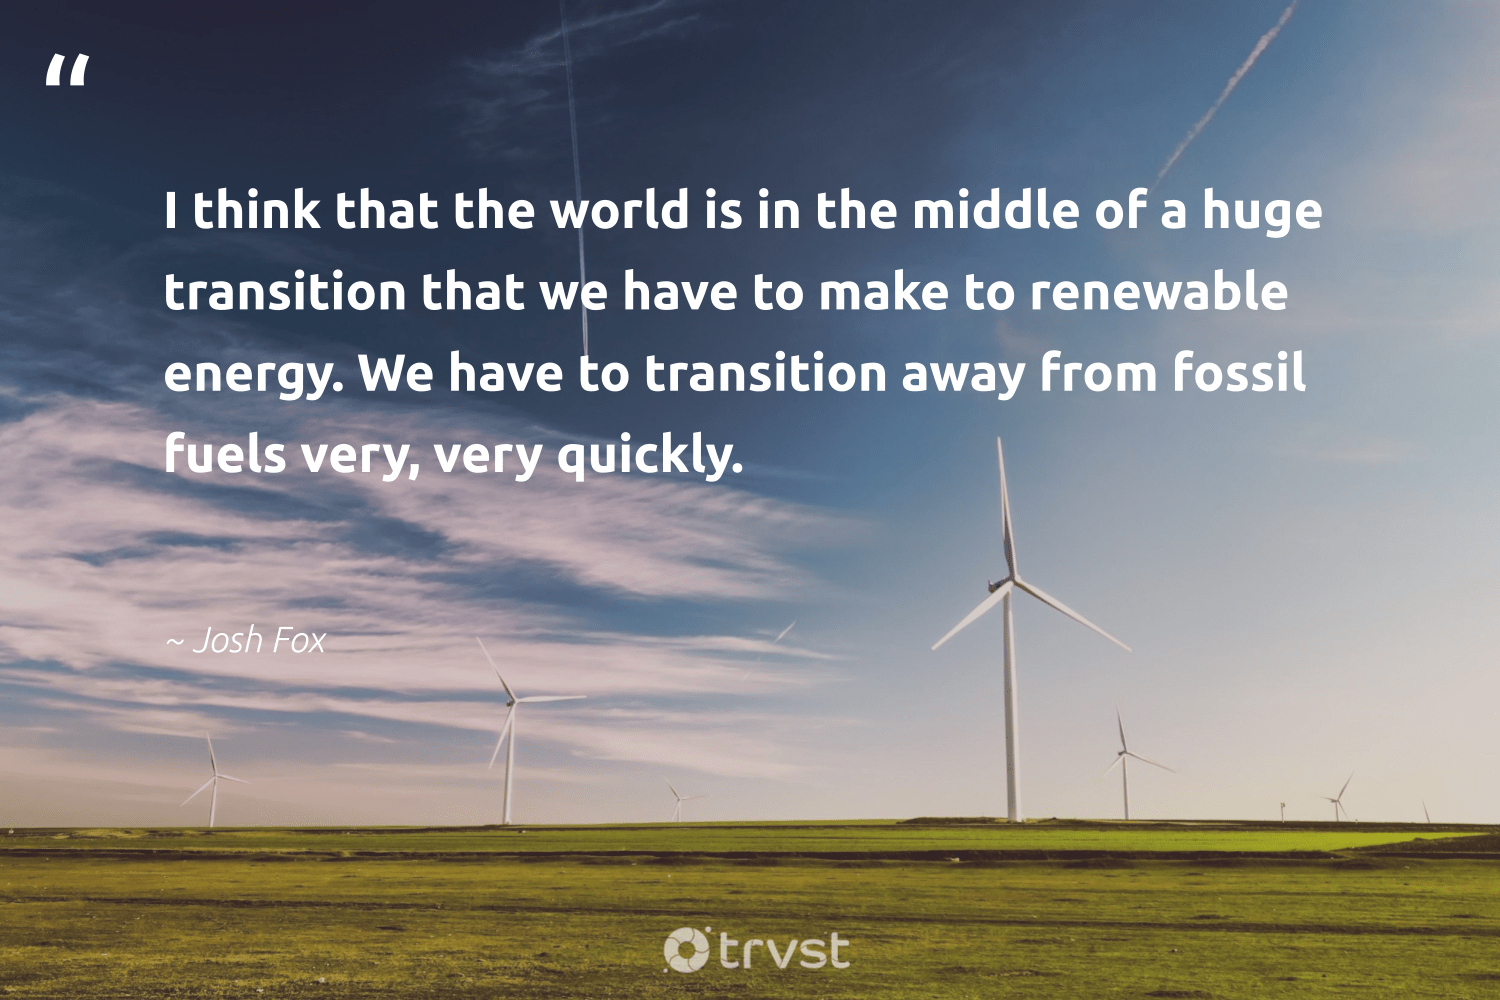 """""""I think that the world is in the middle of a huge transition that we have to make to renewable energy. We have to transition away from fossil fuels very, very quickly.""""  - Josh Fox #trvst #quotes #renewableenergy #energy #renewable #fossilfuels #fossil #greenenergy #affordable #nature #sustainability #bethechange"""